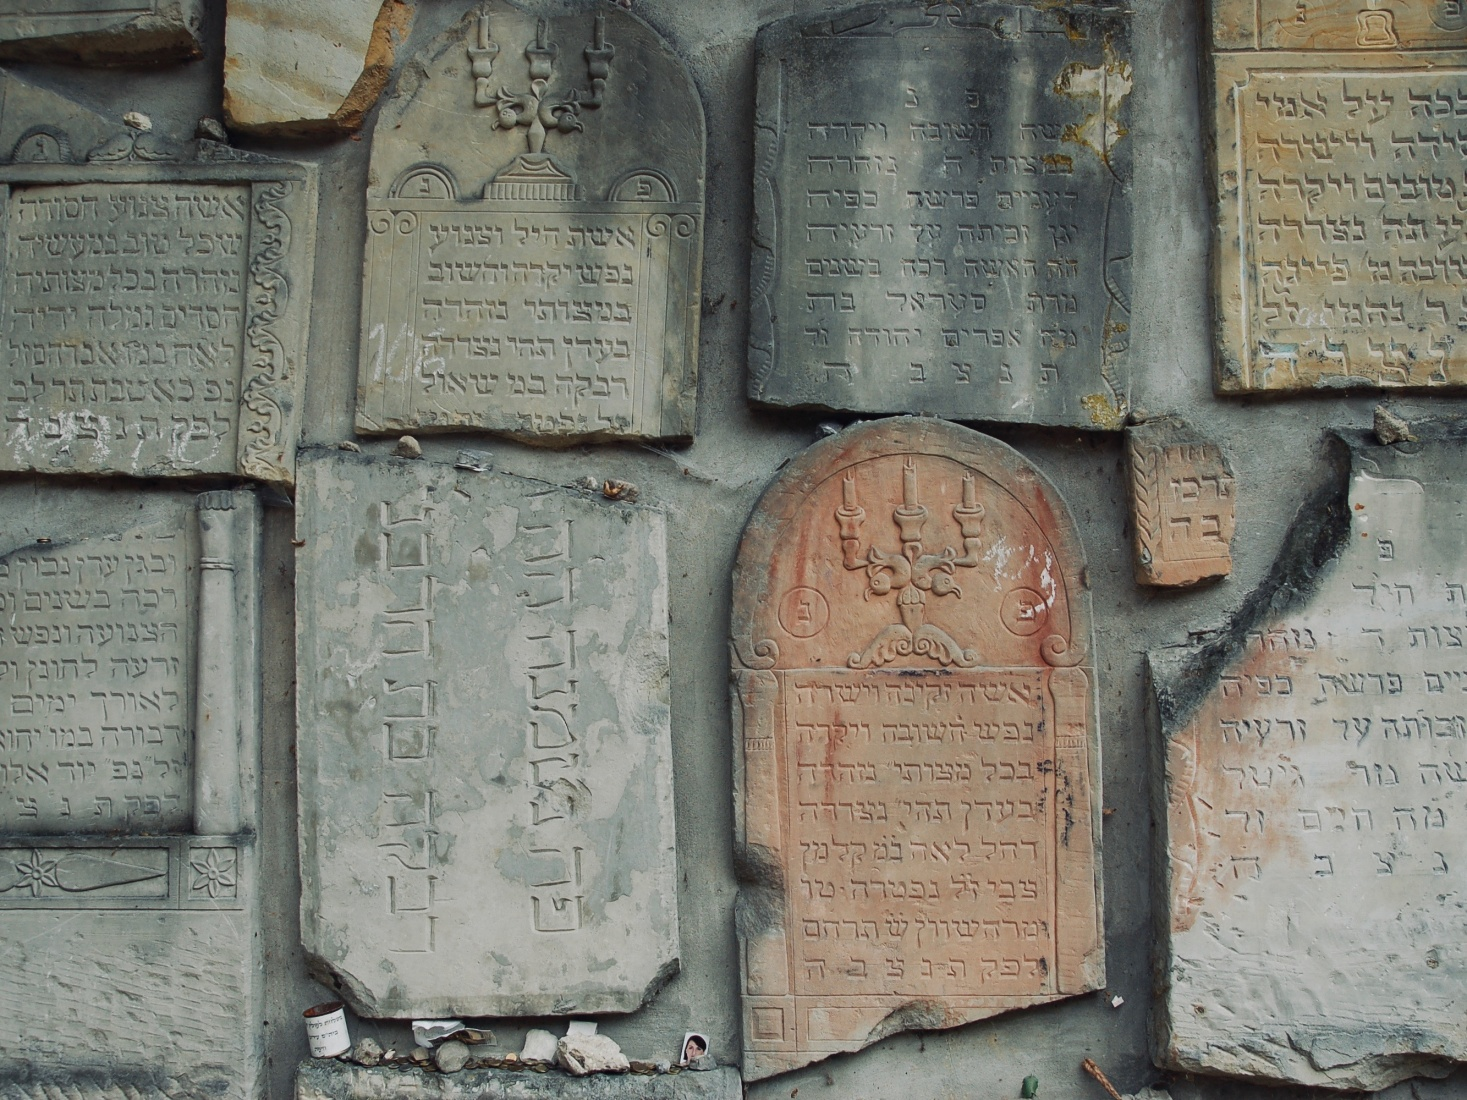 The walls of Kazimierz Dolny's former Jewish cemetery, built from the remains of recovered Jewish tombstones, found in Kazimierz Dolny, Poland.